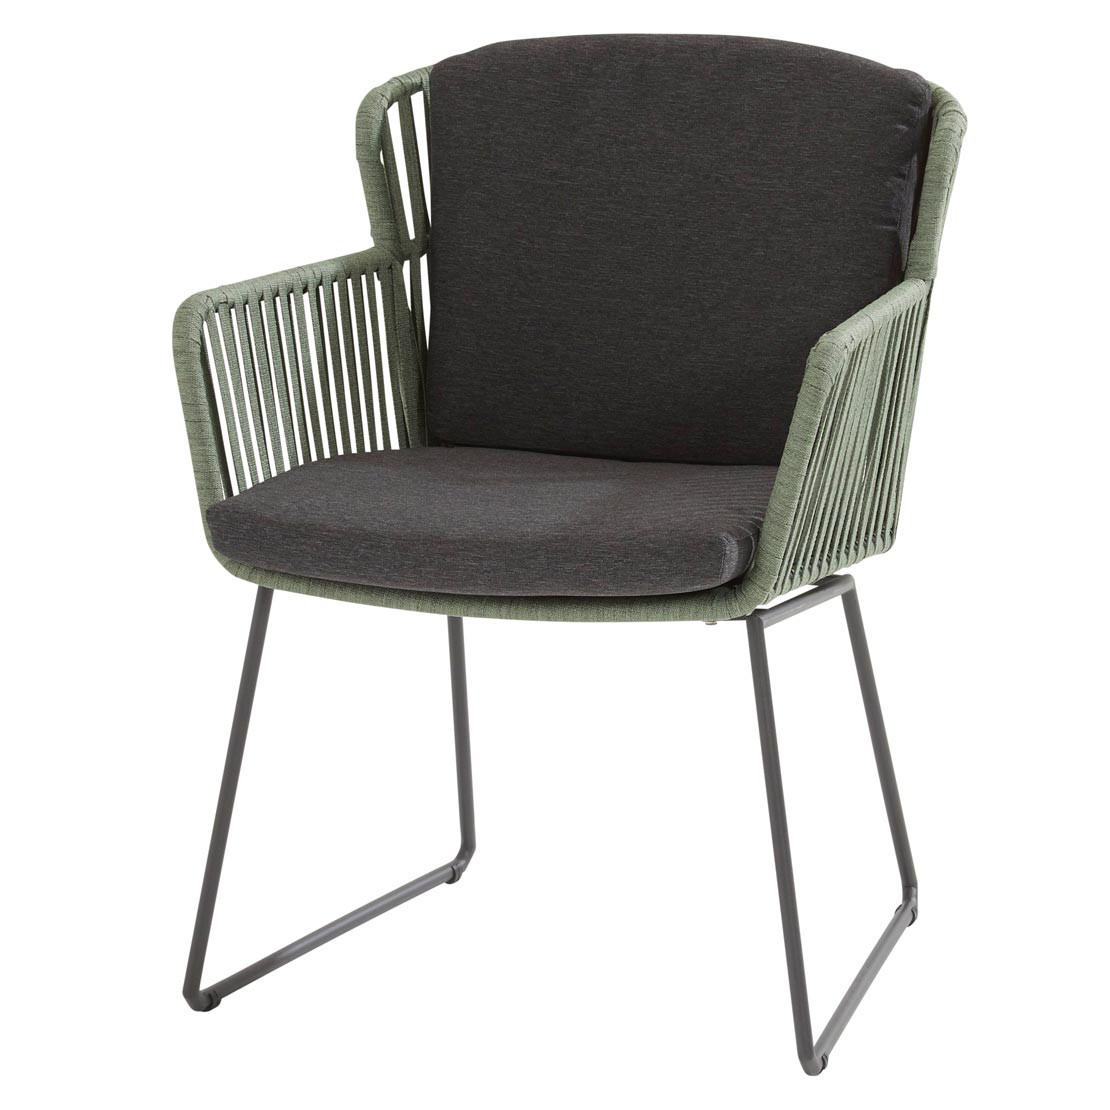 Vitali dining chair Webbing Green with 2 cushions